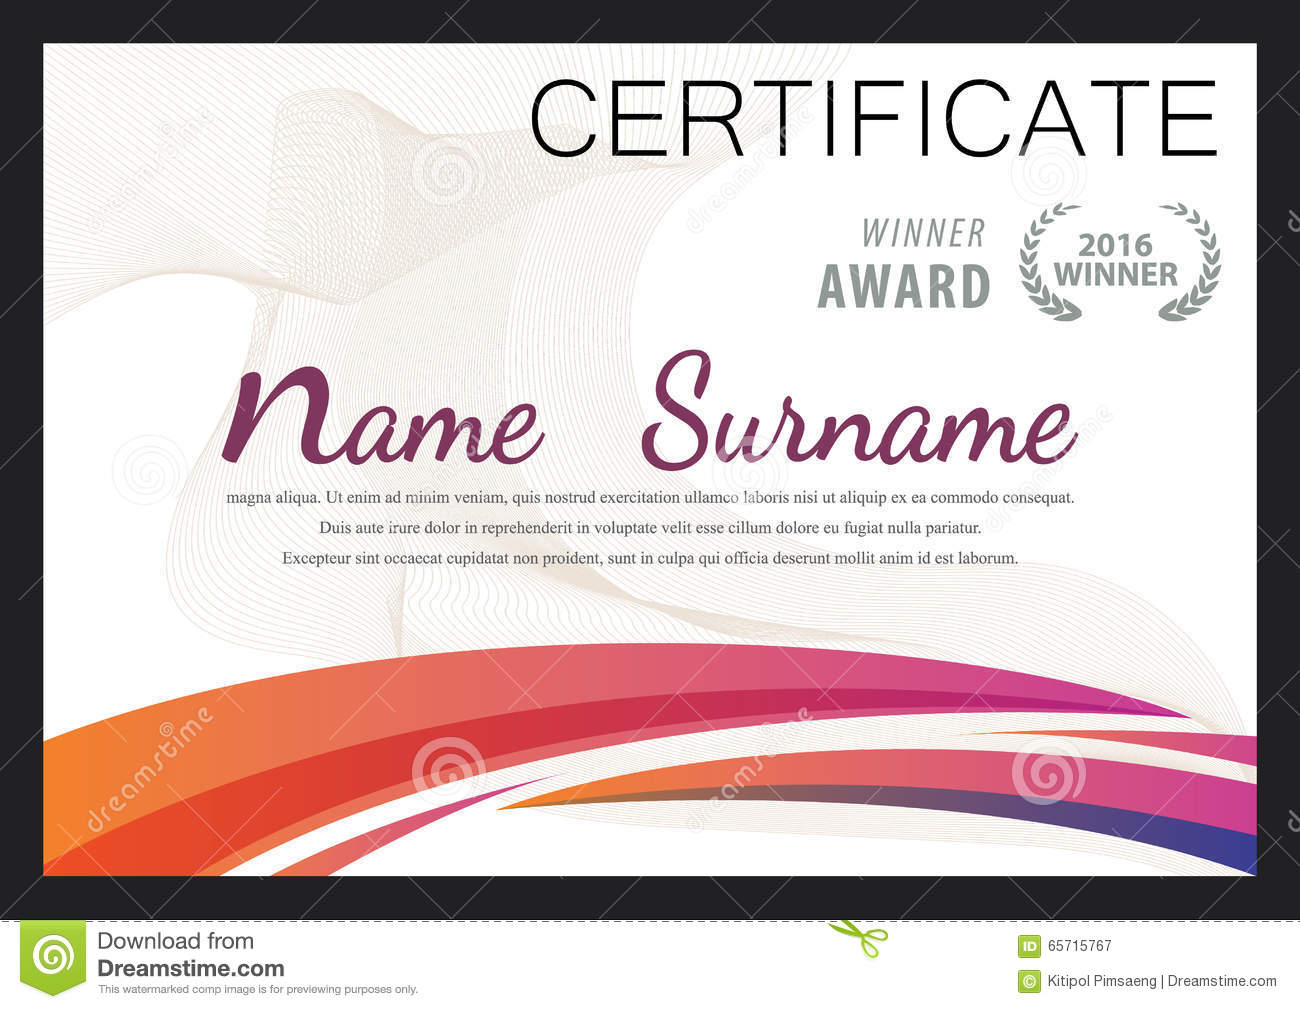 Certificate templatediploma layout stock vector illustration of certificate templatediploma layout calligraphy gift alramifo Image collections